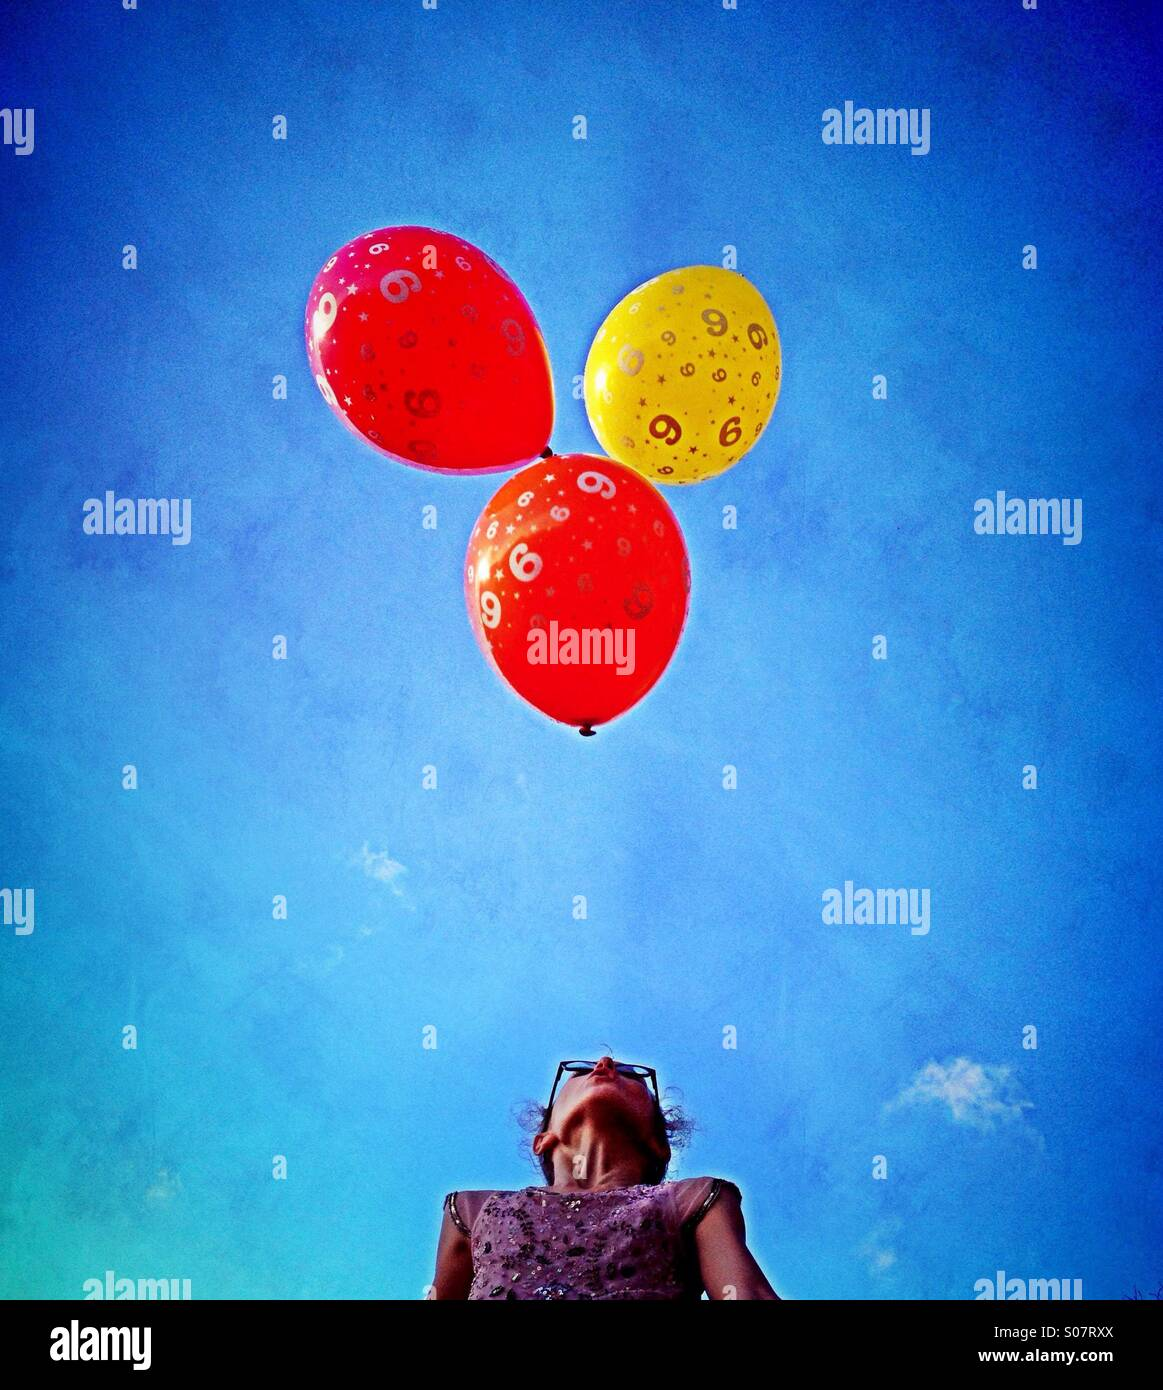 Girl blowing to keep three balloons up in air - Stock Image